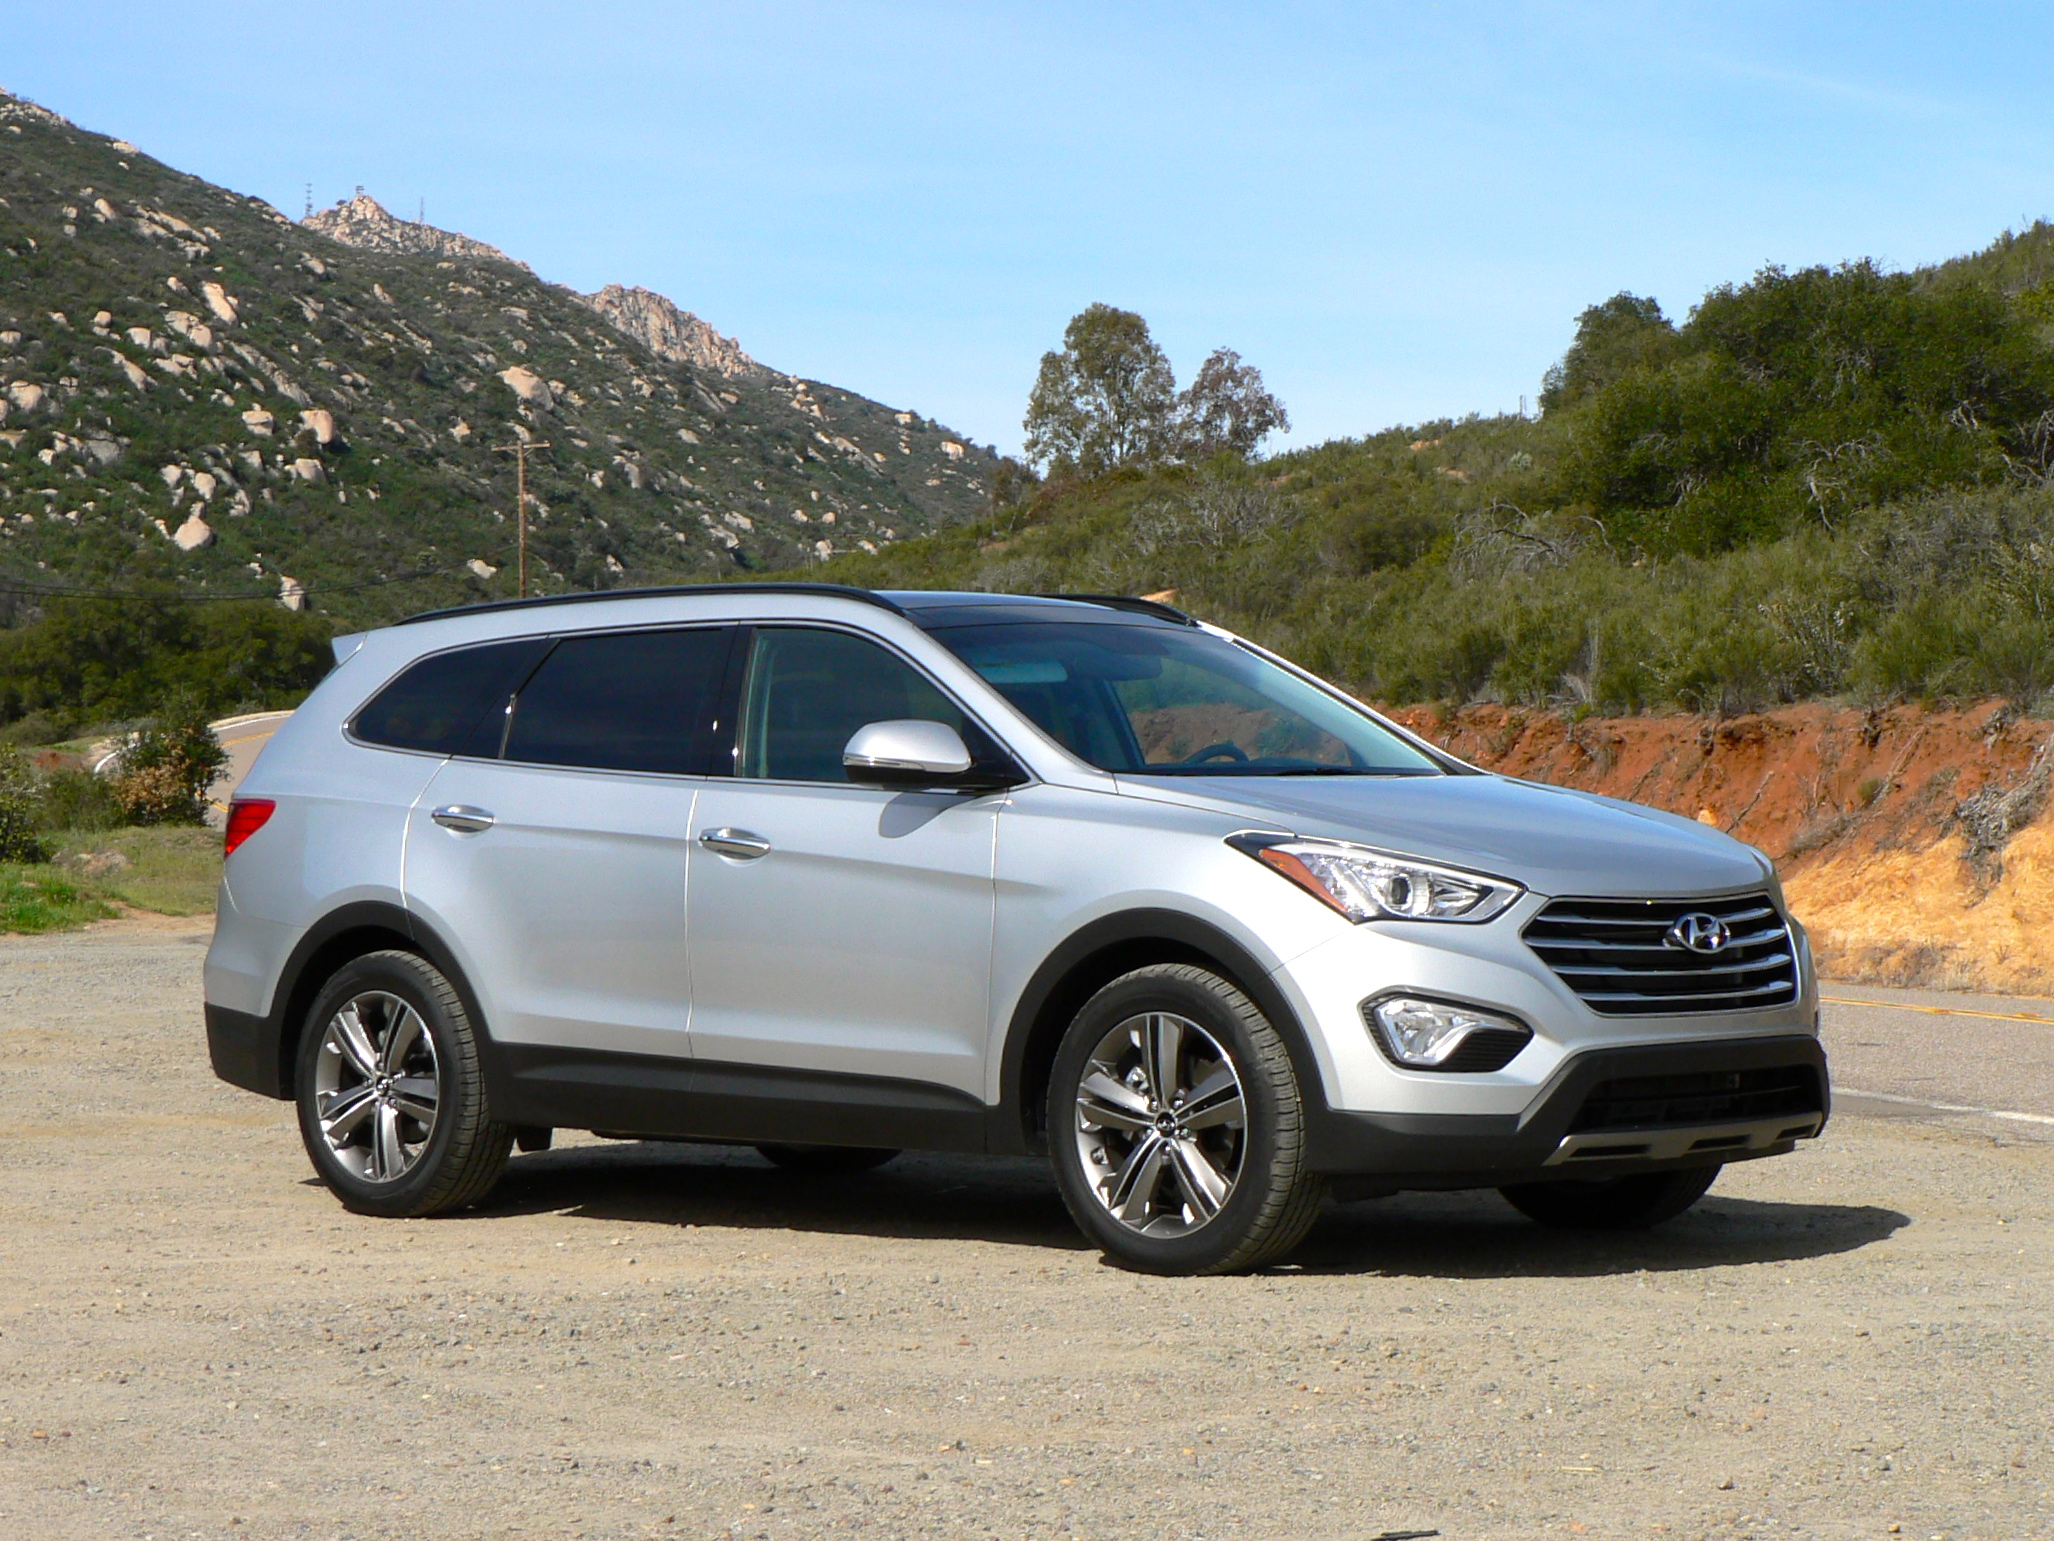 fe sport front suv en cars trend reviews view and santa motor hyundai rating canada